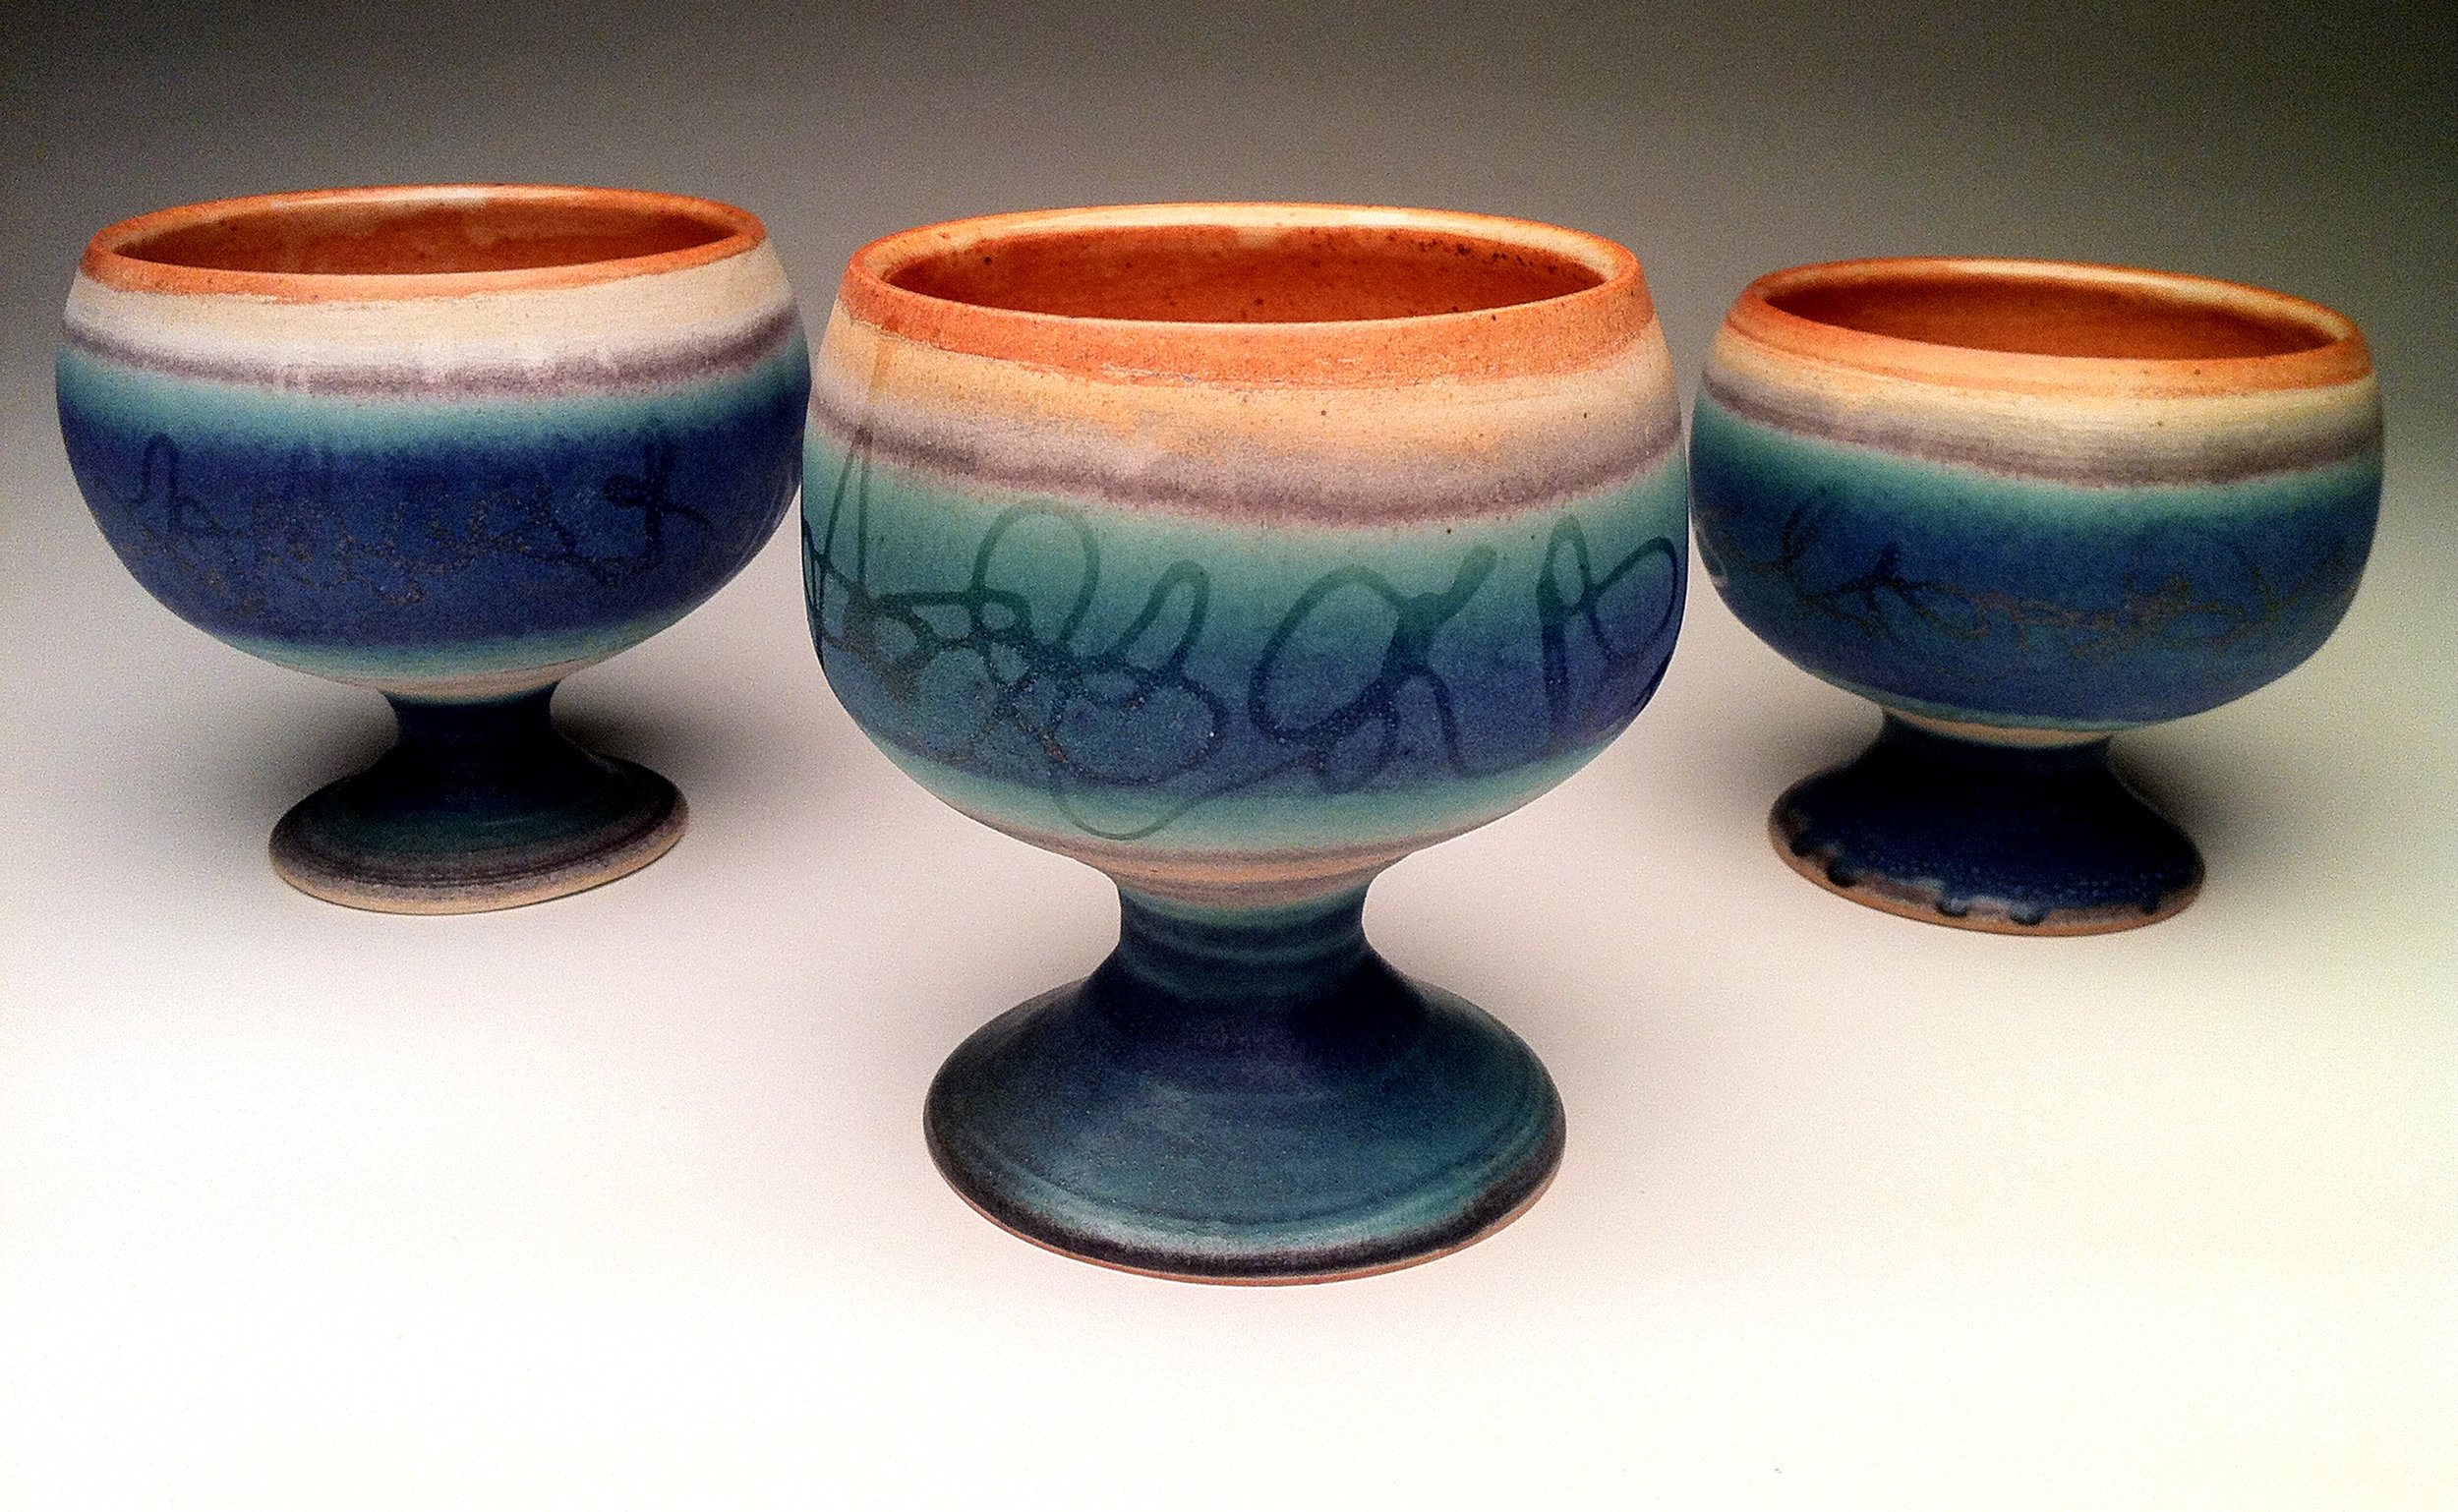 3 oragne goblets top view.jpg